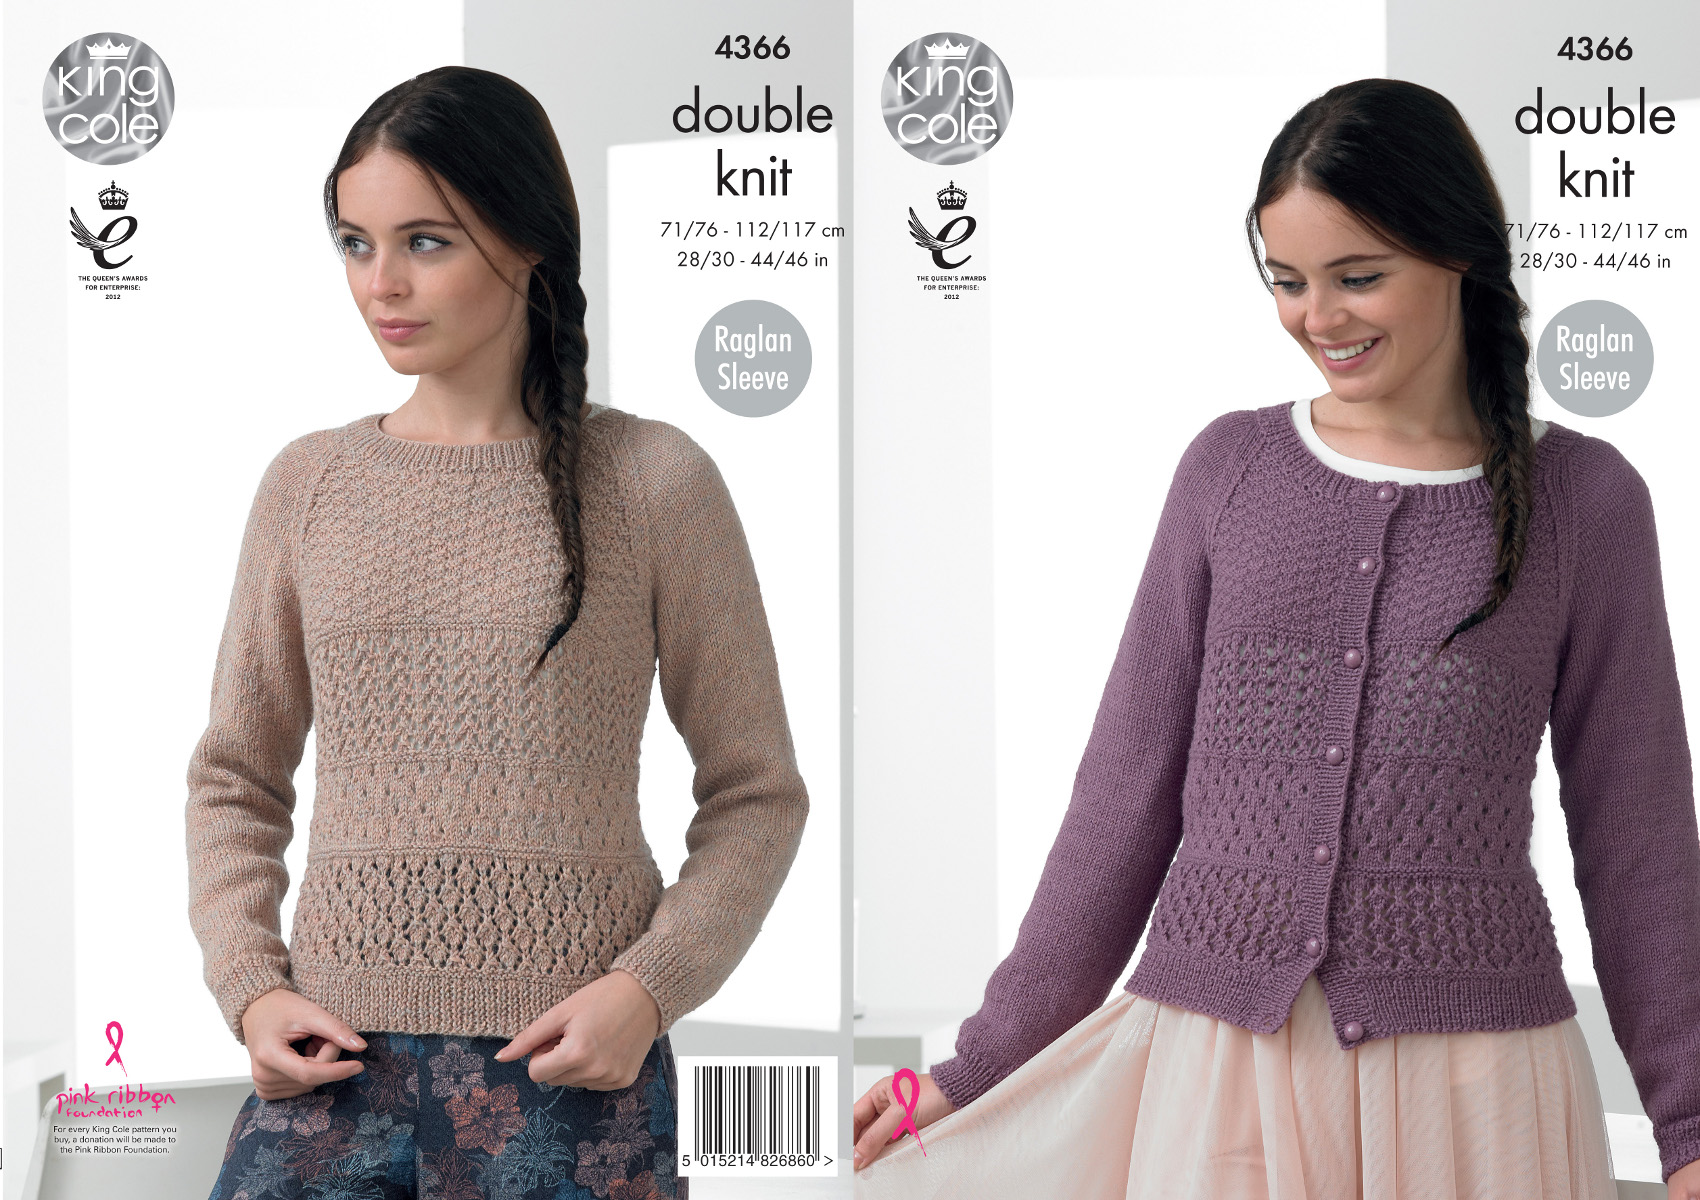 3b9040ae5392 Raglan Sleeve Cardigan Jumper Sweater Ladies Knitting Pattern King ...